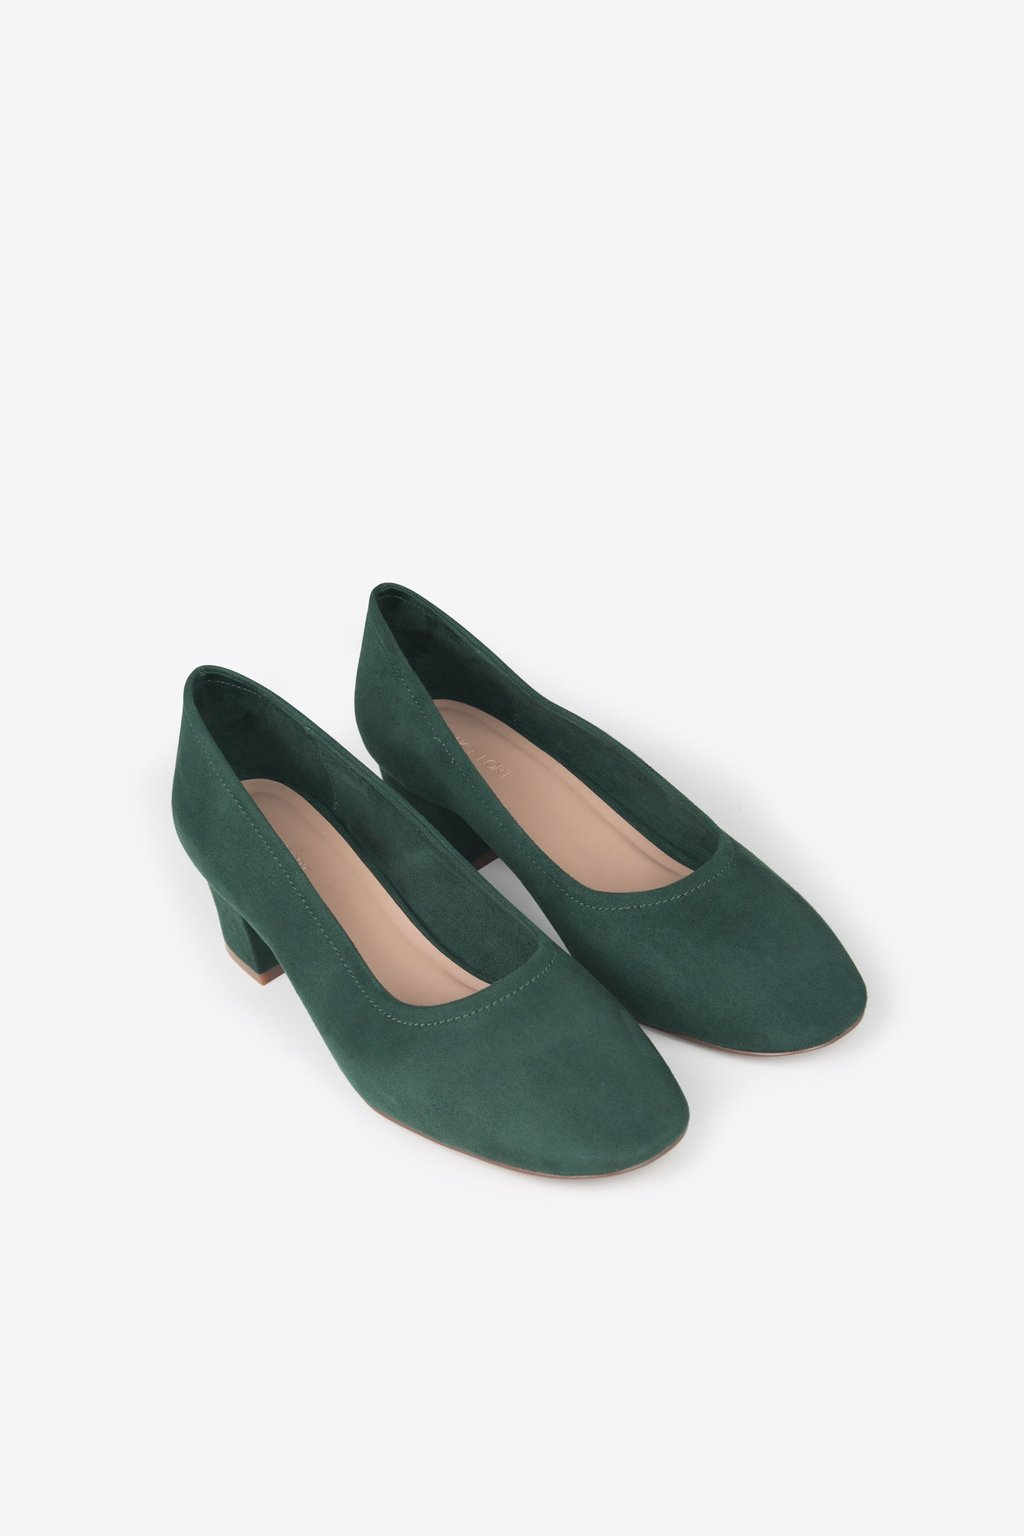 Block Heel 1896 Forest Green 9